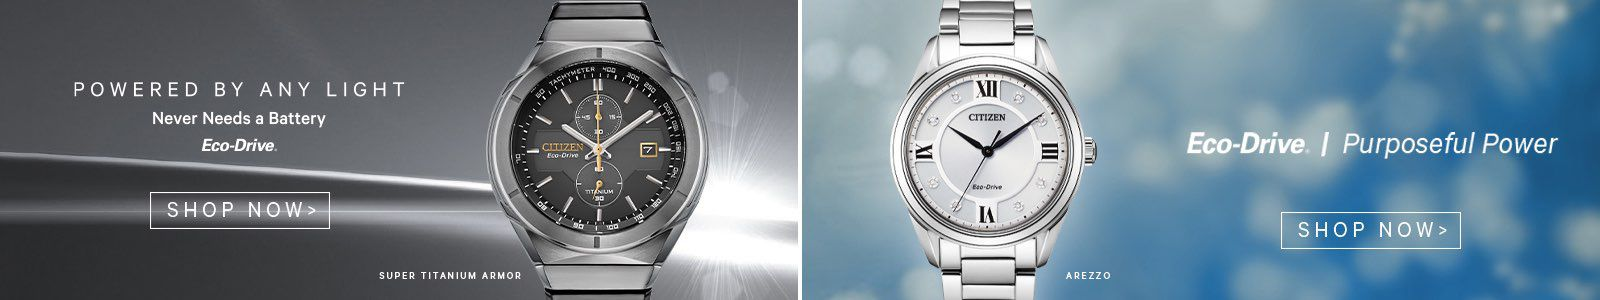 Powered by Any Light, Never Needs a Battery, Ec0-Drive, Shop Now, Eco-Drive I Purposeful Power, Shop Now